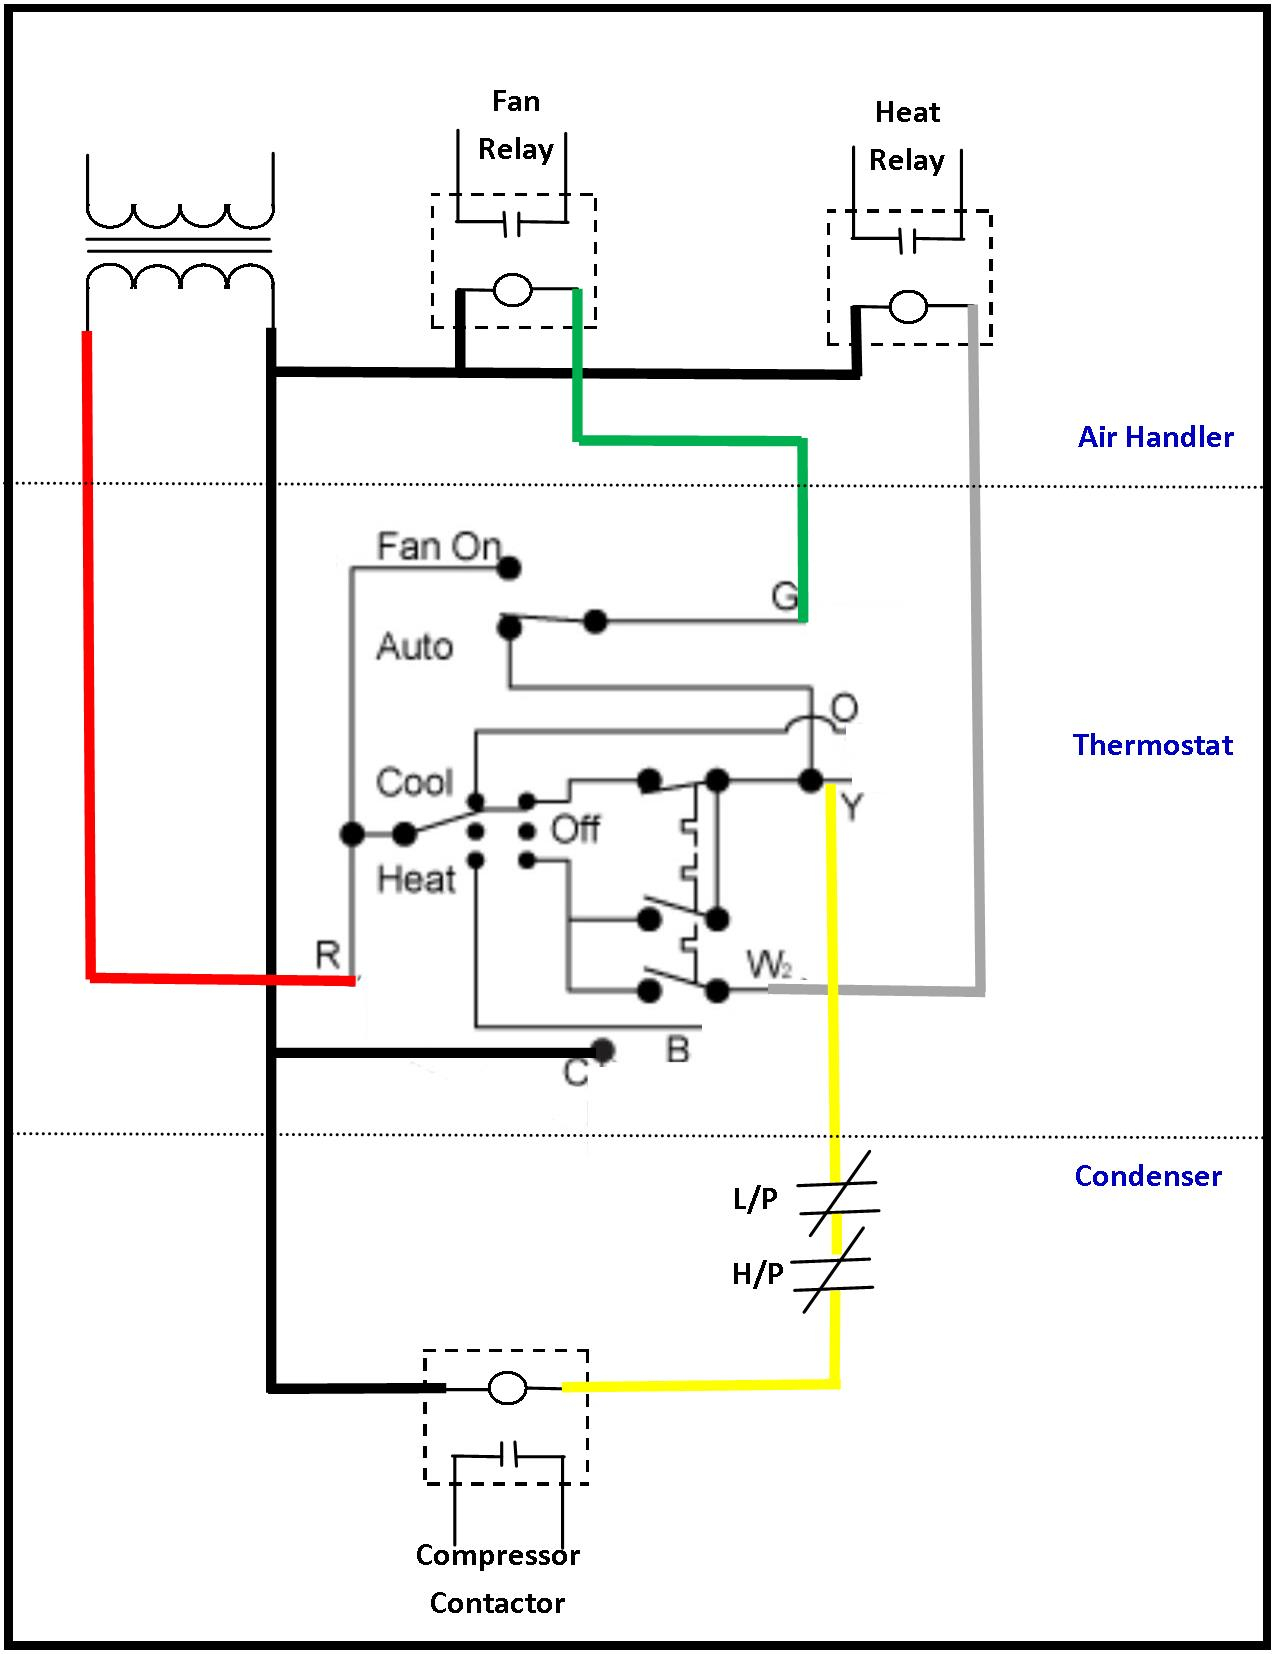 ac low voltage wiring diagram Download-Booster Transformer 600v To 480v Single Phase Three Pdf Types And 480V 120V Wiring Diagram 7-j